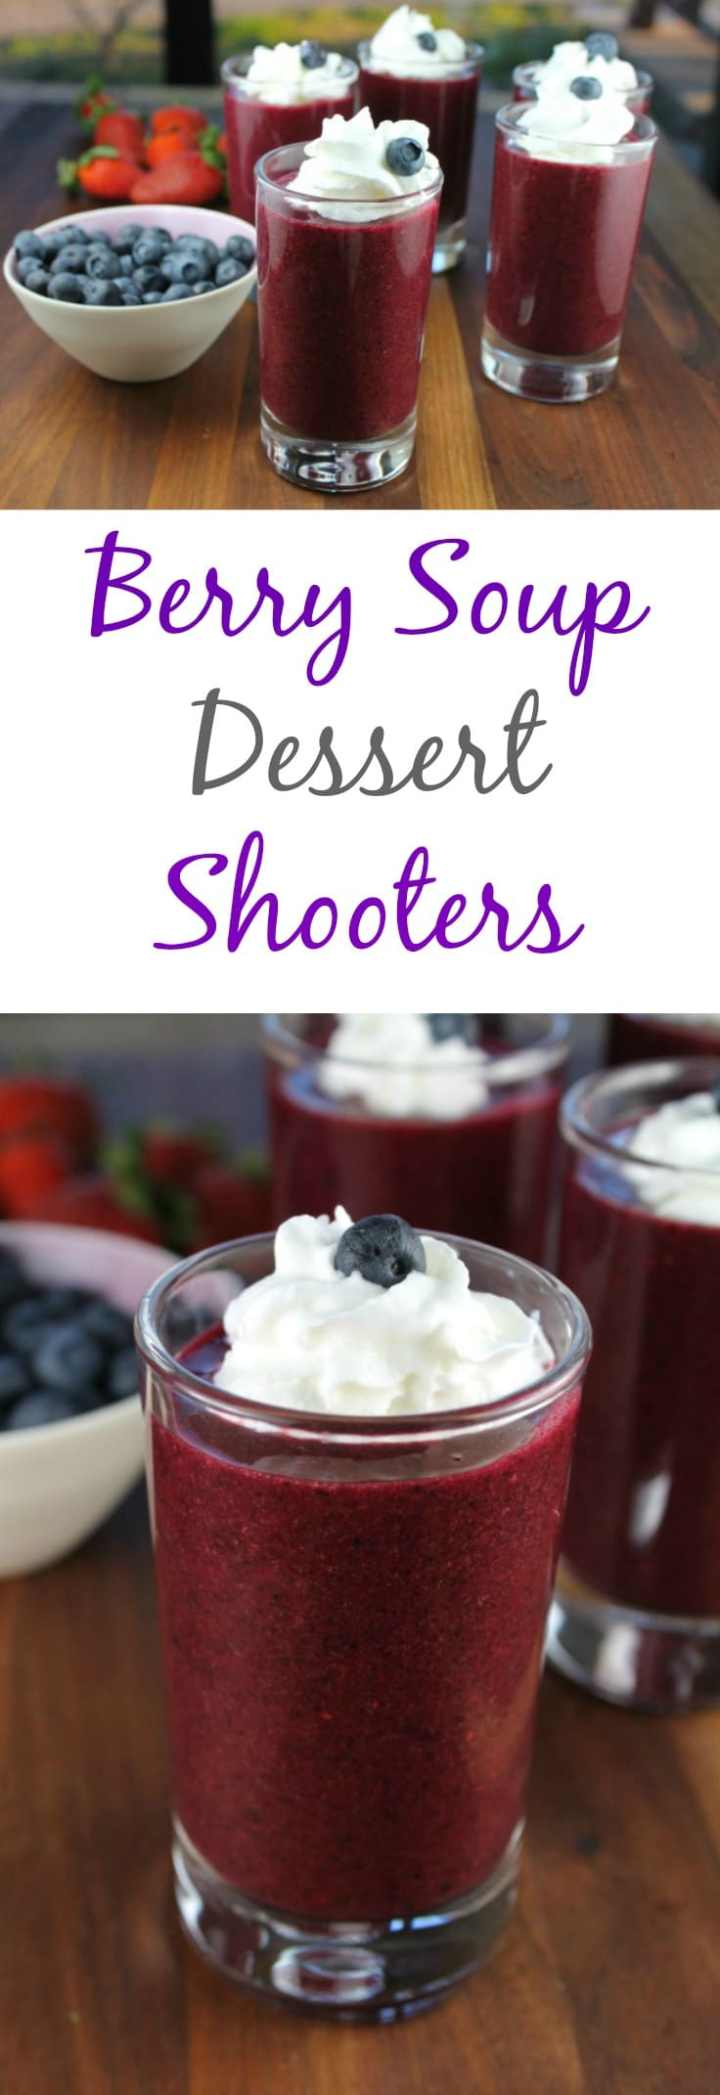 Berry Soup Dessert Shooters are a simple, healthy and delicious recipe from Miss in the Kitchen #ProgressiveEats